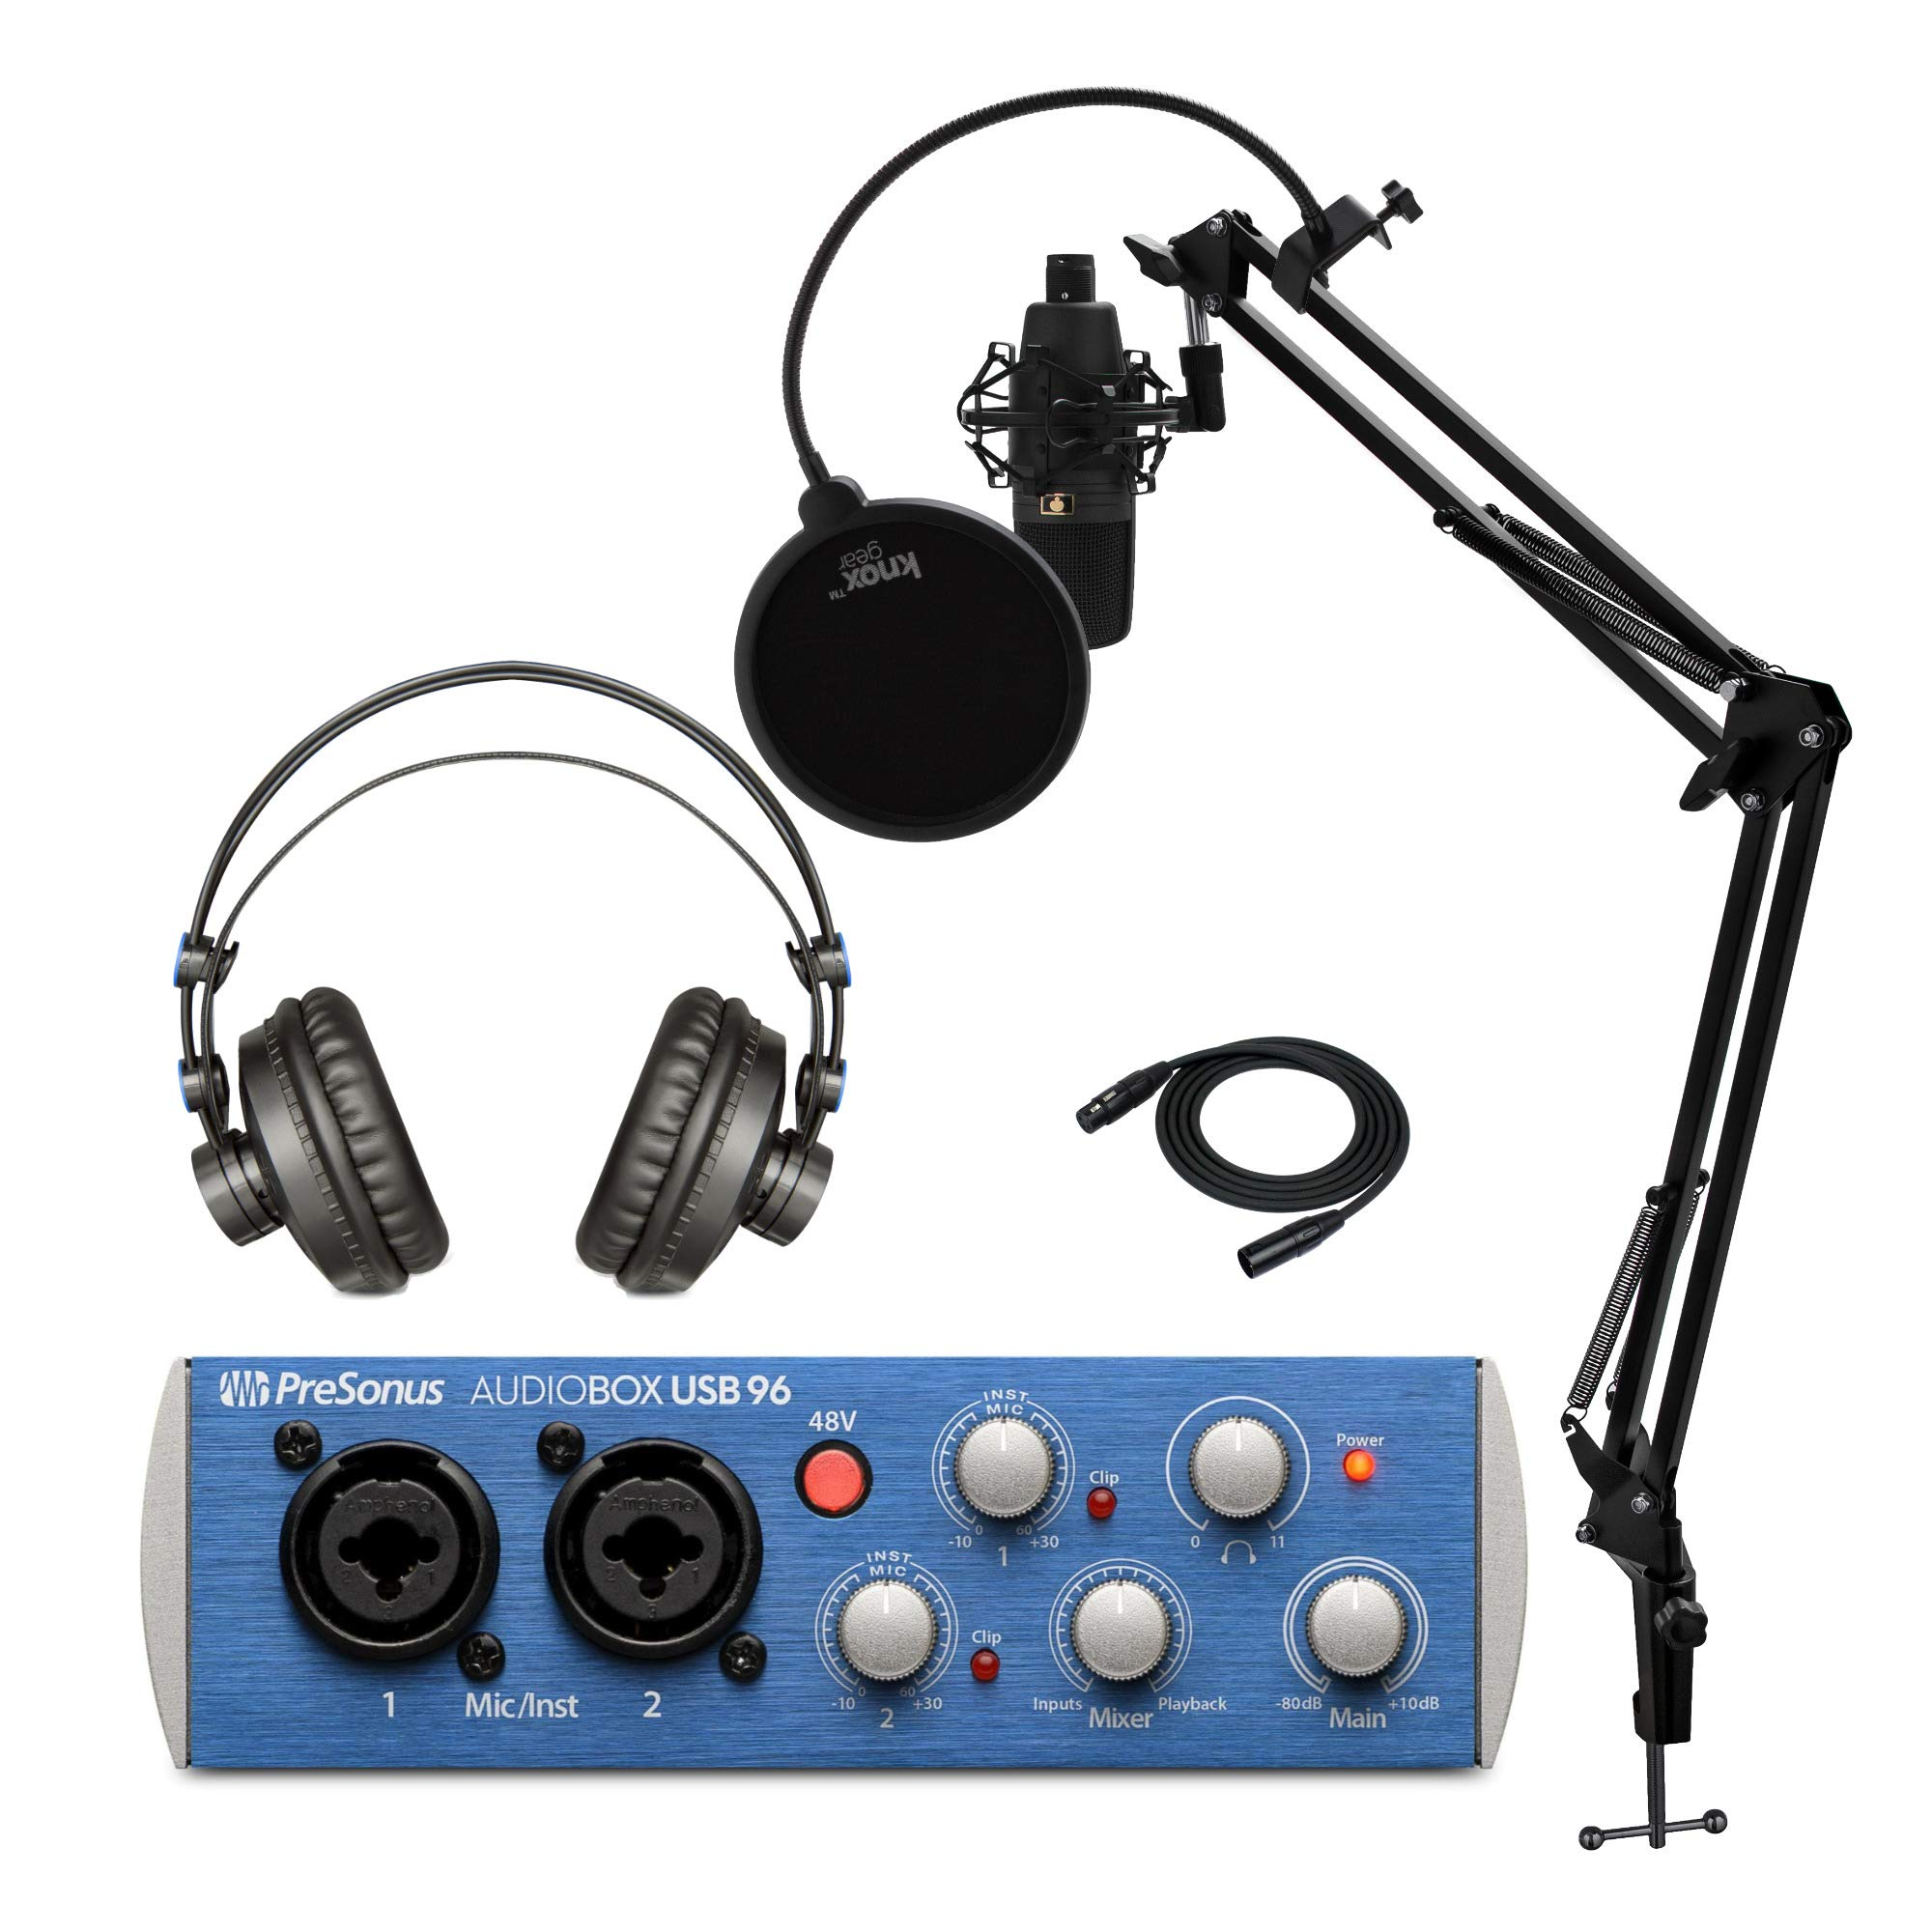 PreSonus AudioBox 96 Studio USB 2.0 Recording Interface Bundle with Headphones, Microphone, XLR Cable, Knox Studio Stand, Shock Mount and Pop Filter (4 Items)